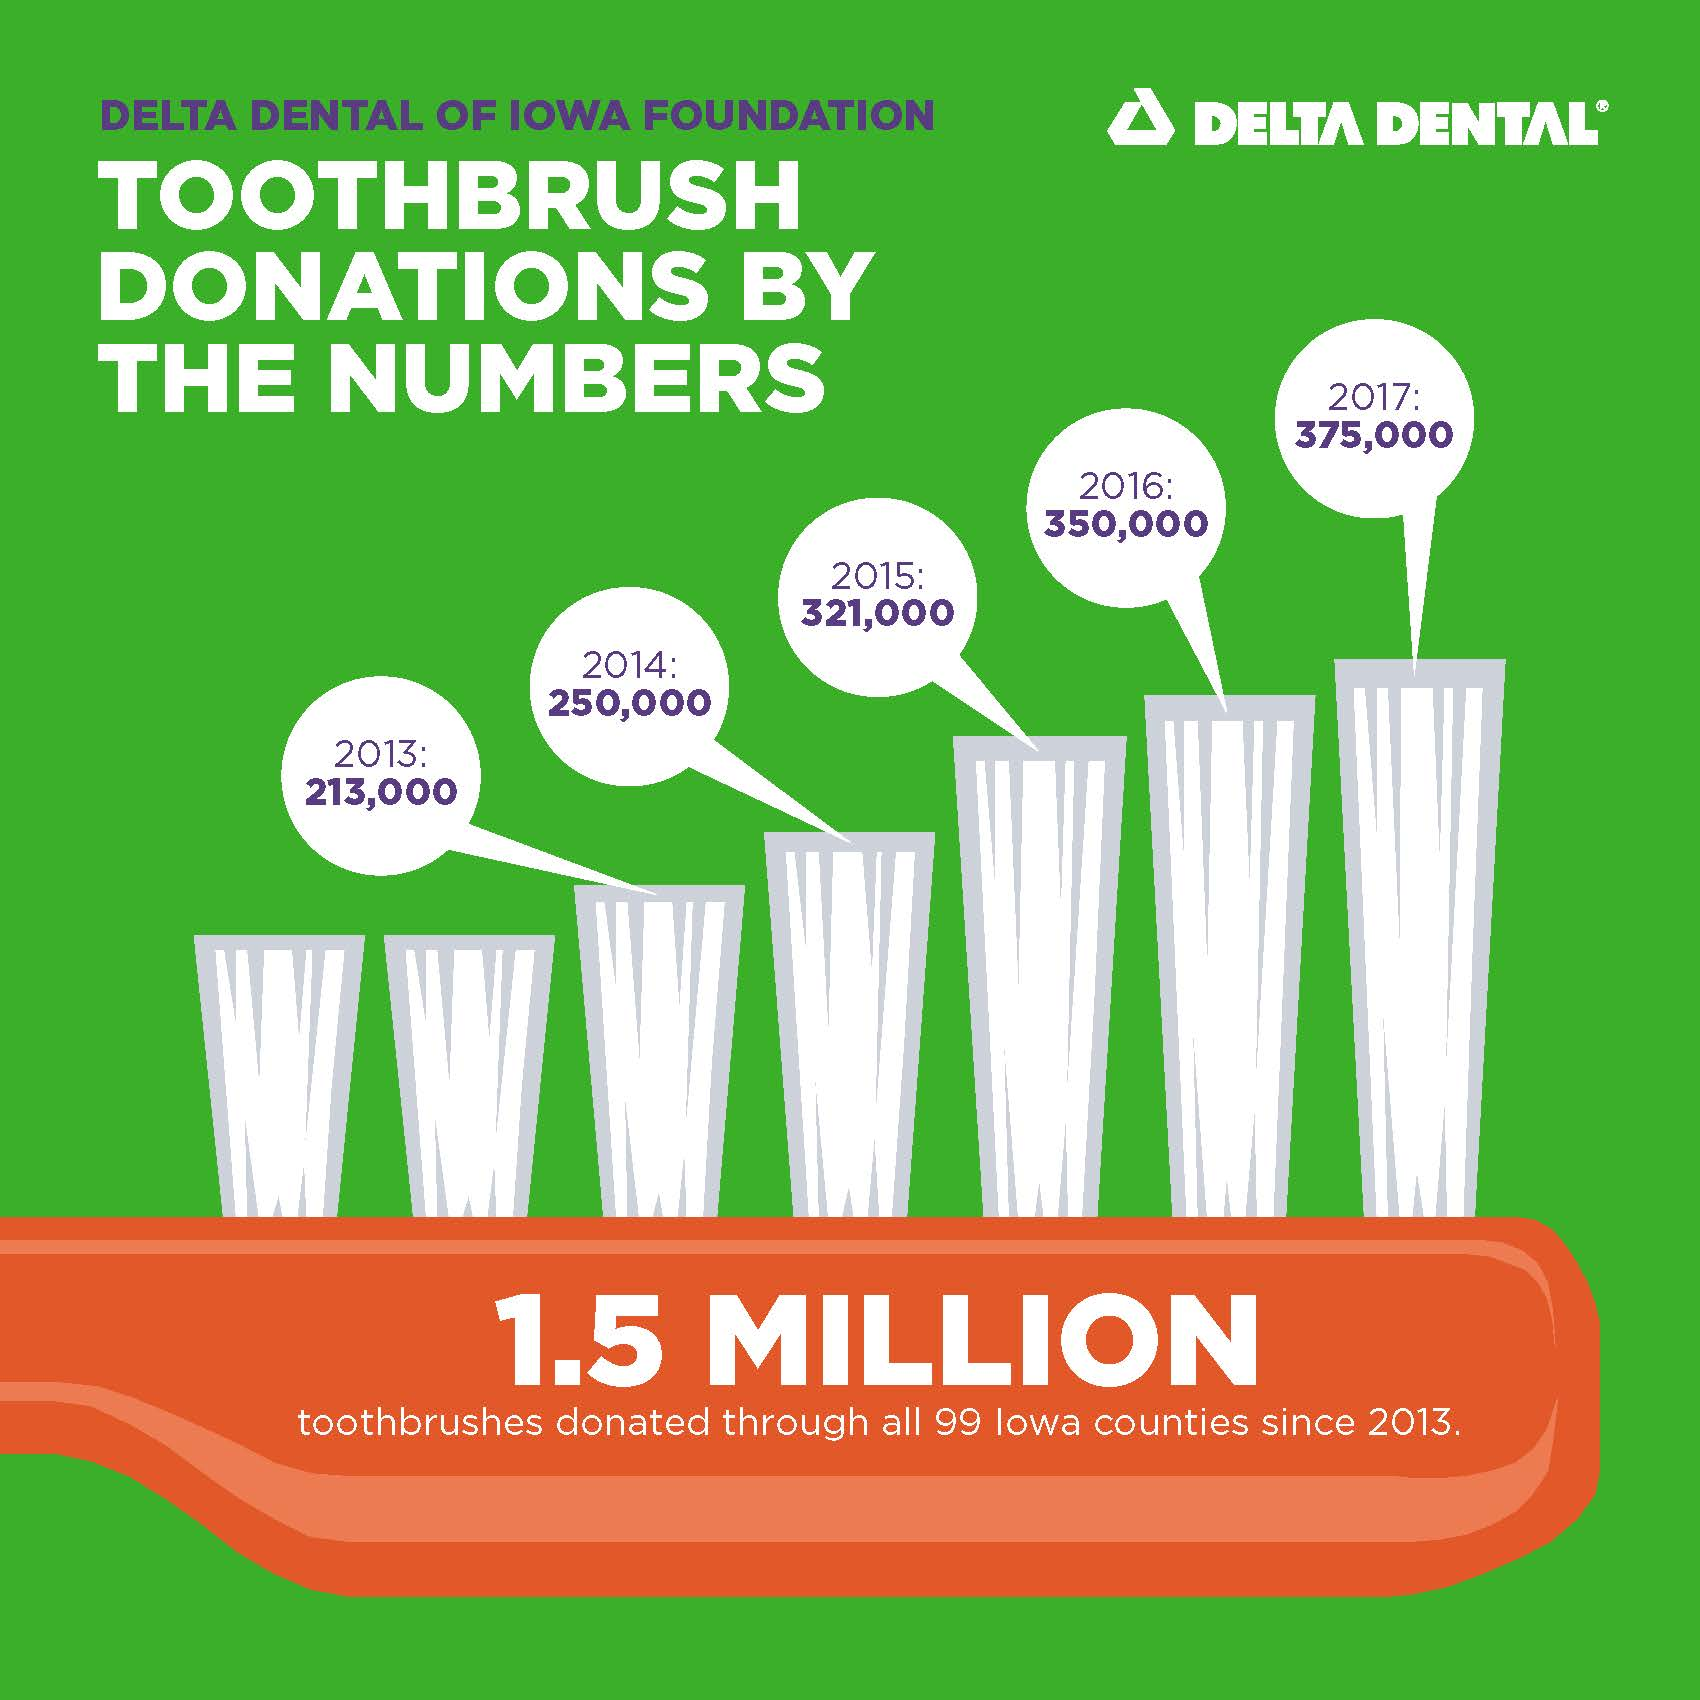 Delta Dental of Iowa Foundation Donates 375,000 Toothbrushes in 2017